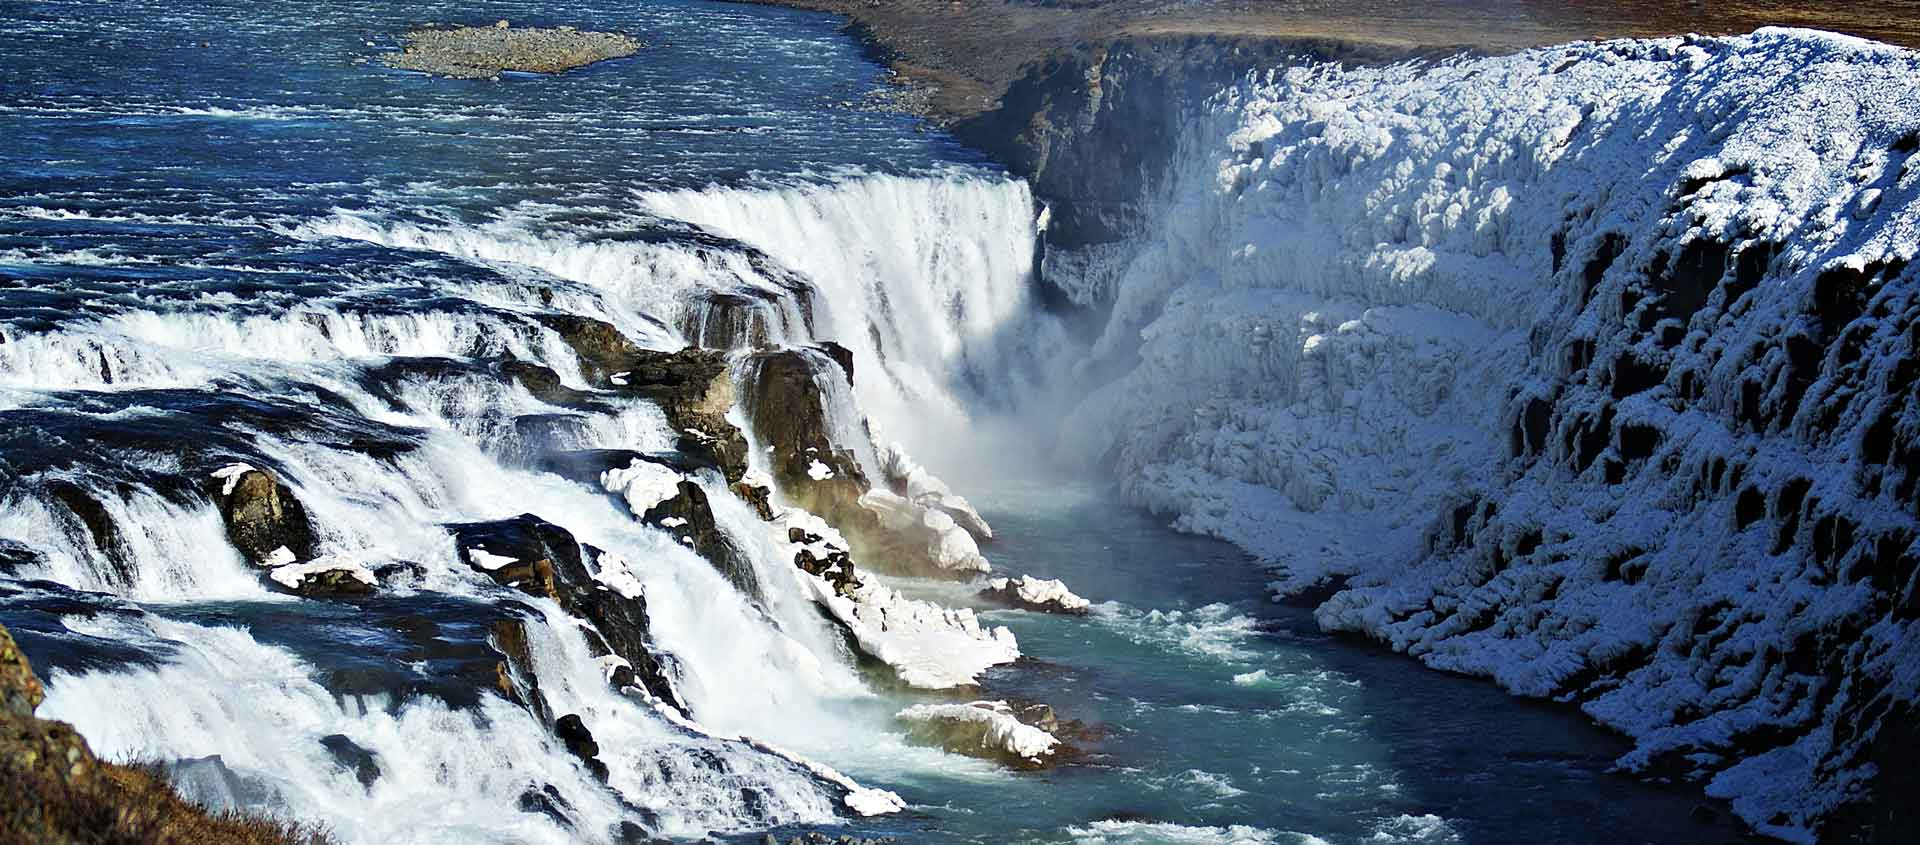 Travel to Iceland in Spring photo of Gulfoss Waterfall